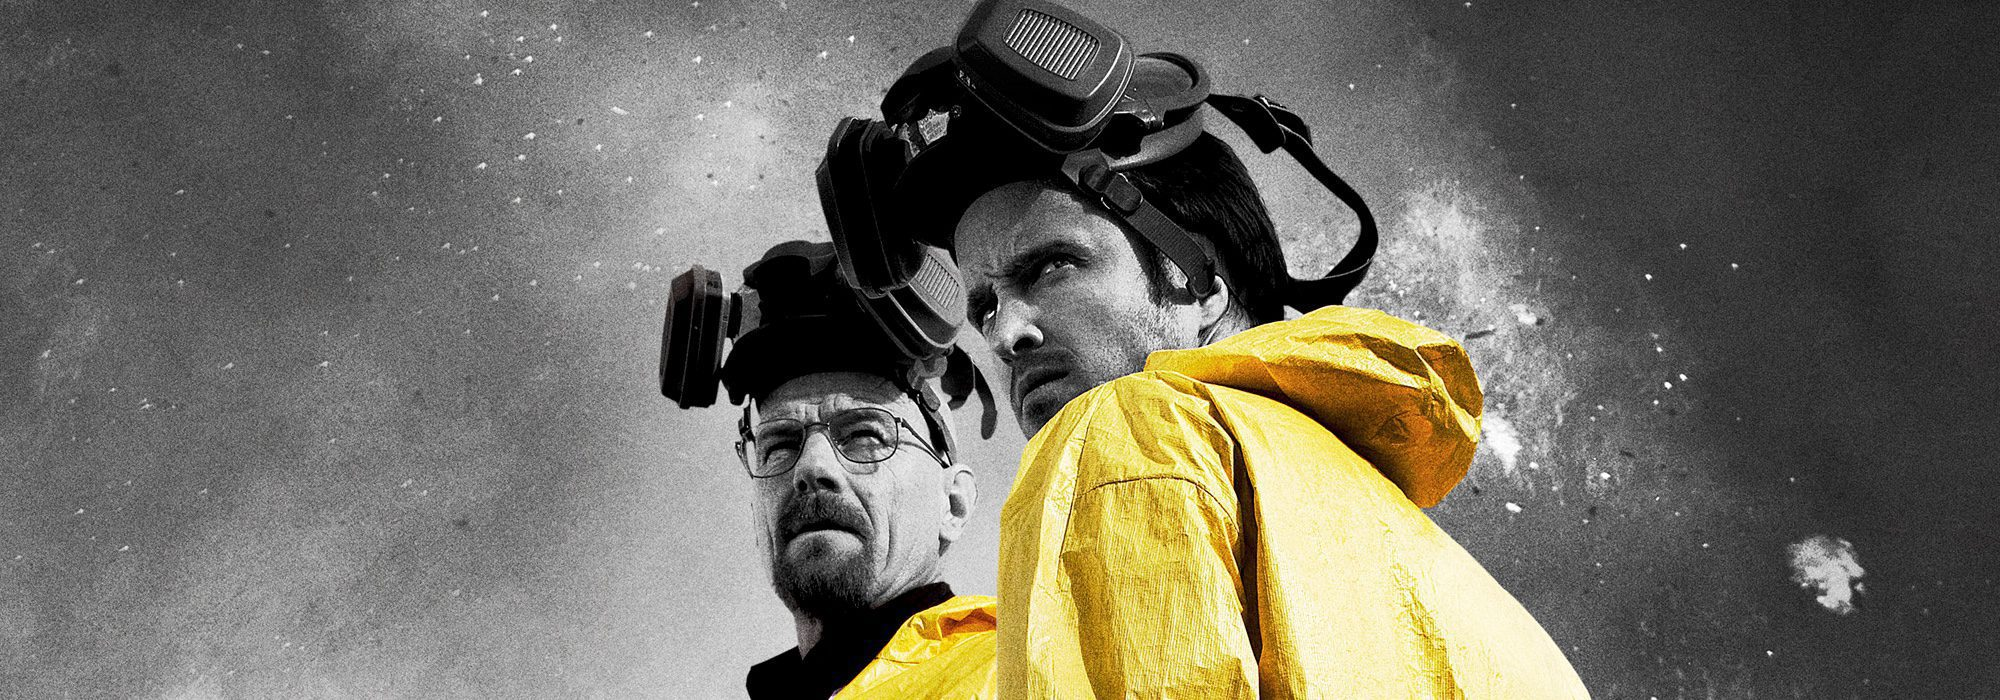 breaking bad temporada 4 capitulo 7 castellano descargar torrent